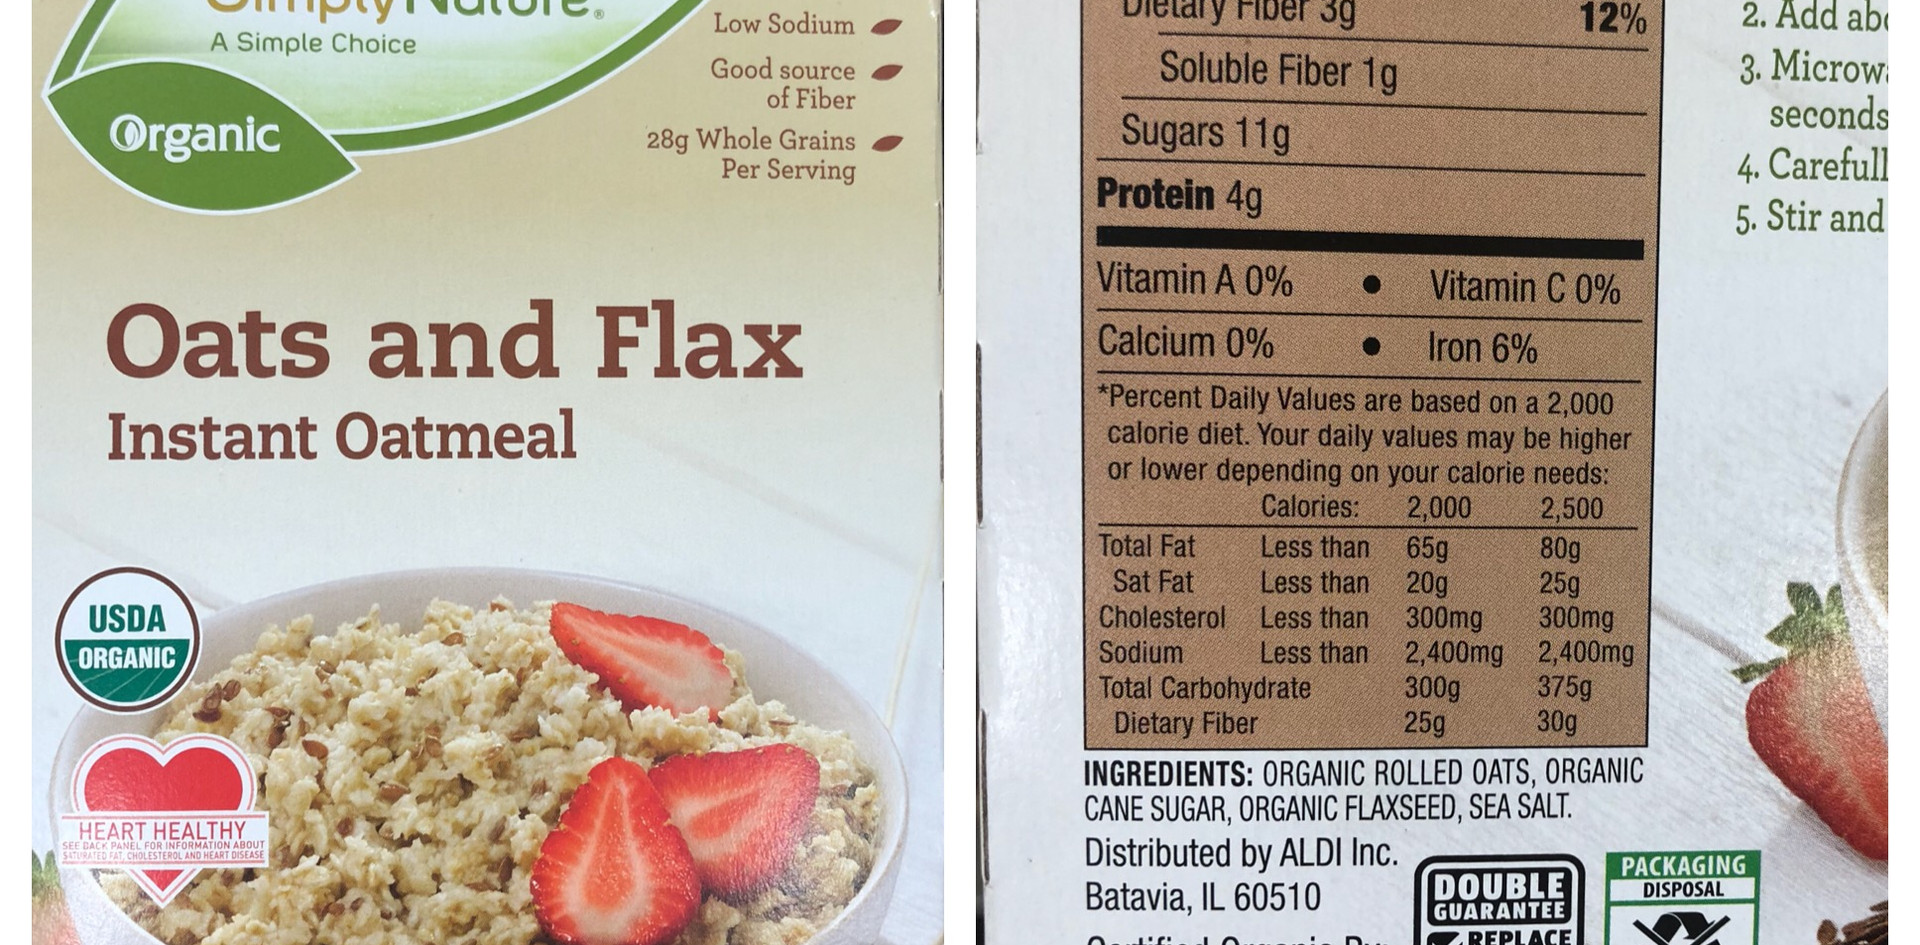 Oats and Flax